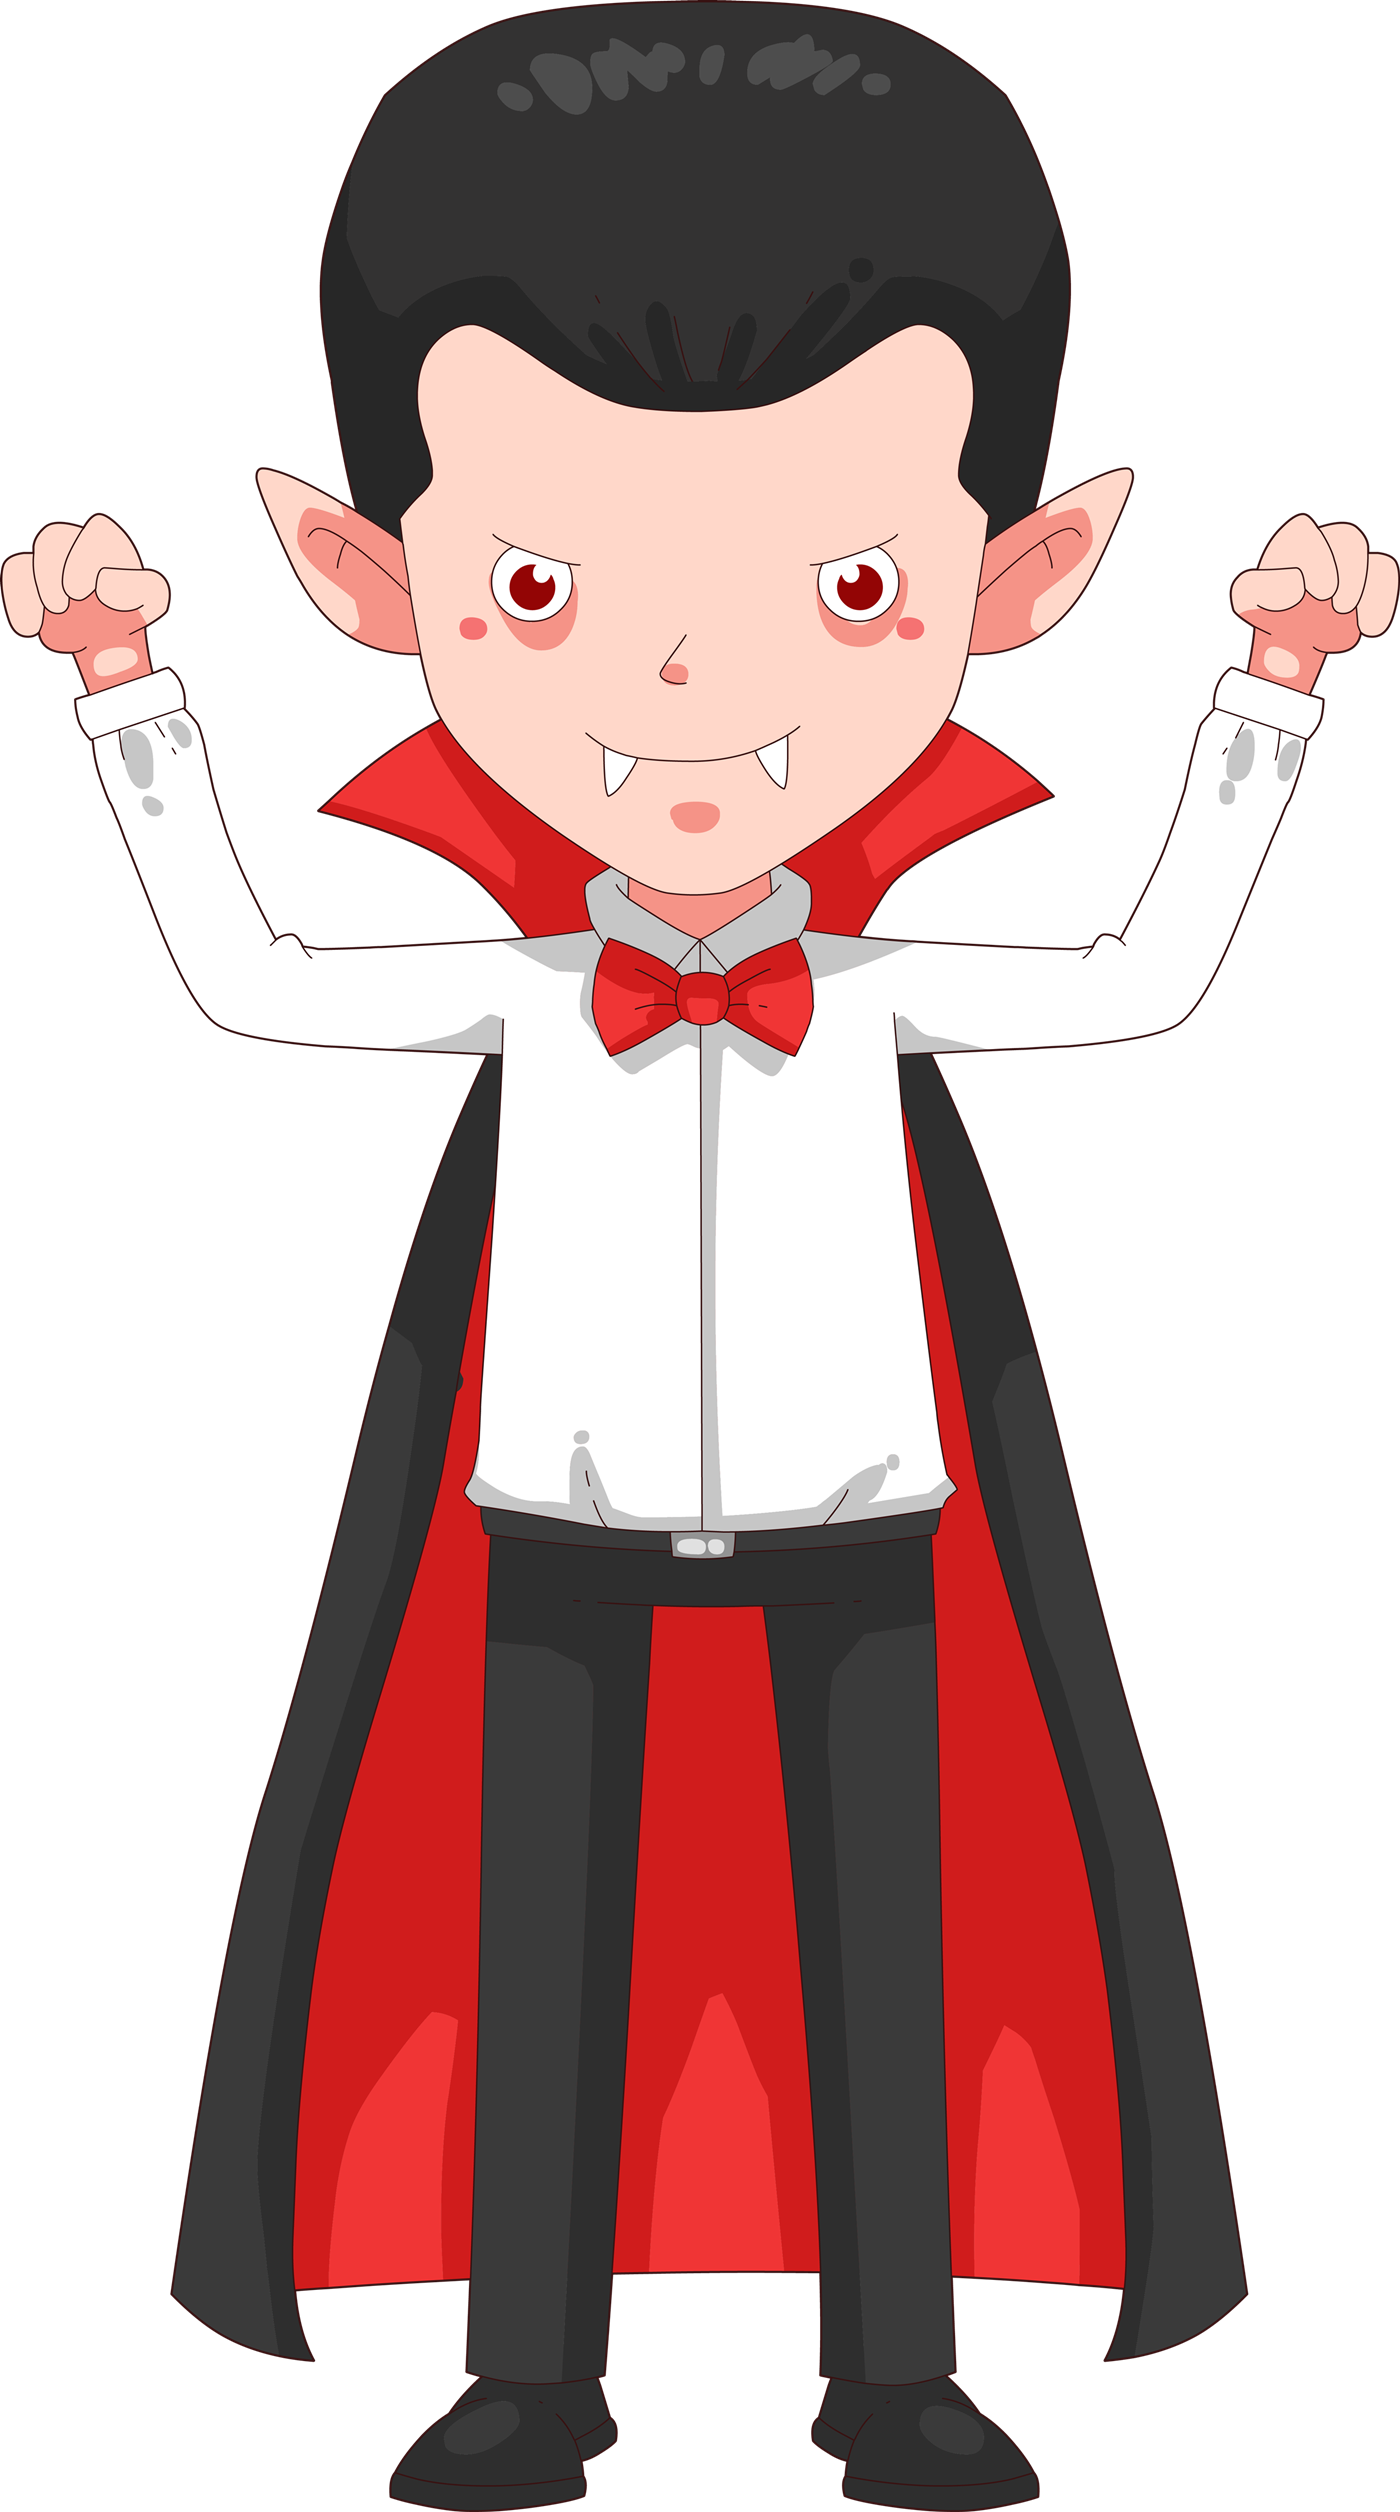 jpg transparent stock Dracula clipart. Free fish cliparts download.